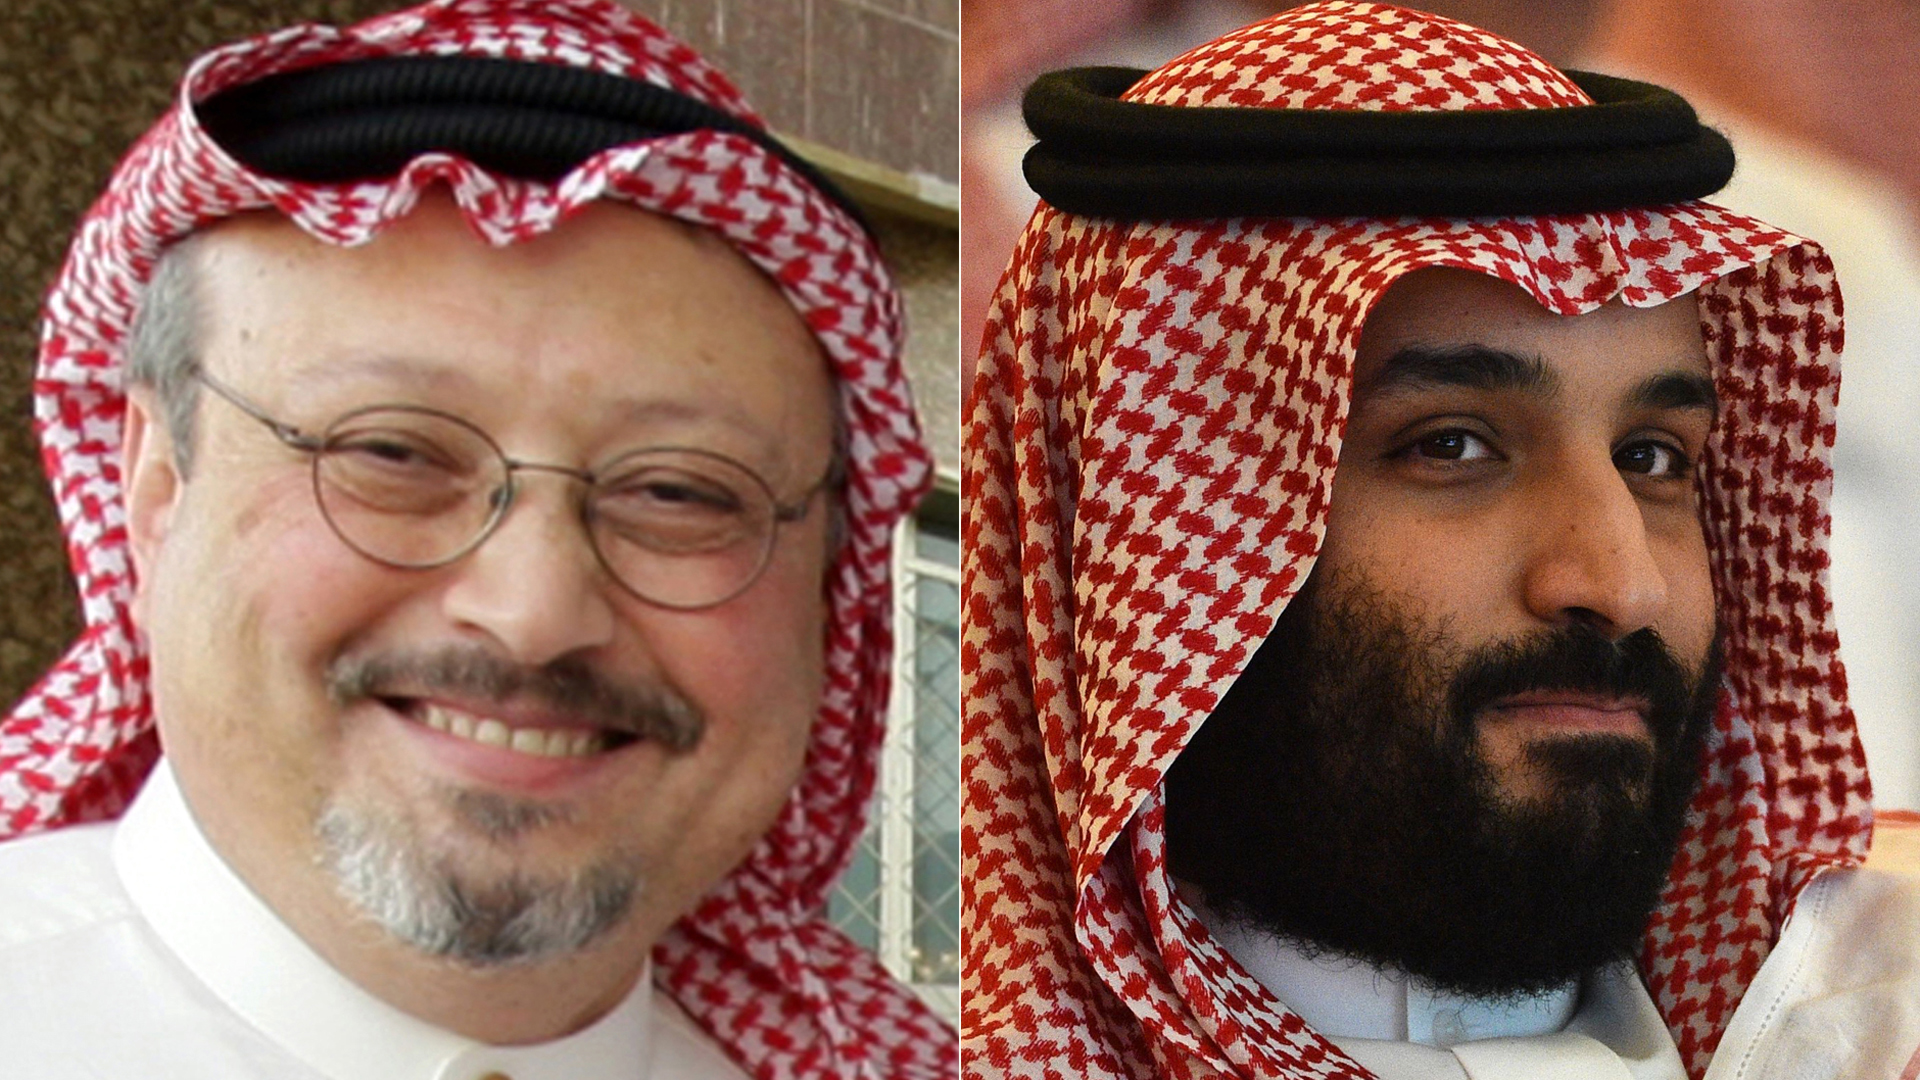 Prominent Saudi journalist Jamal Khashoggi appears in an undated file photo from Getty Images. On right, Saudi Crown Prince Mohammed bin Salman attends the Future Investment Initiative conference in Riyadh on Oct. 23, 2018. (Credit: FAYEZ NURELDINE/AFP/Getty Images)